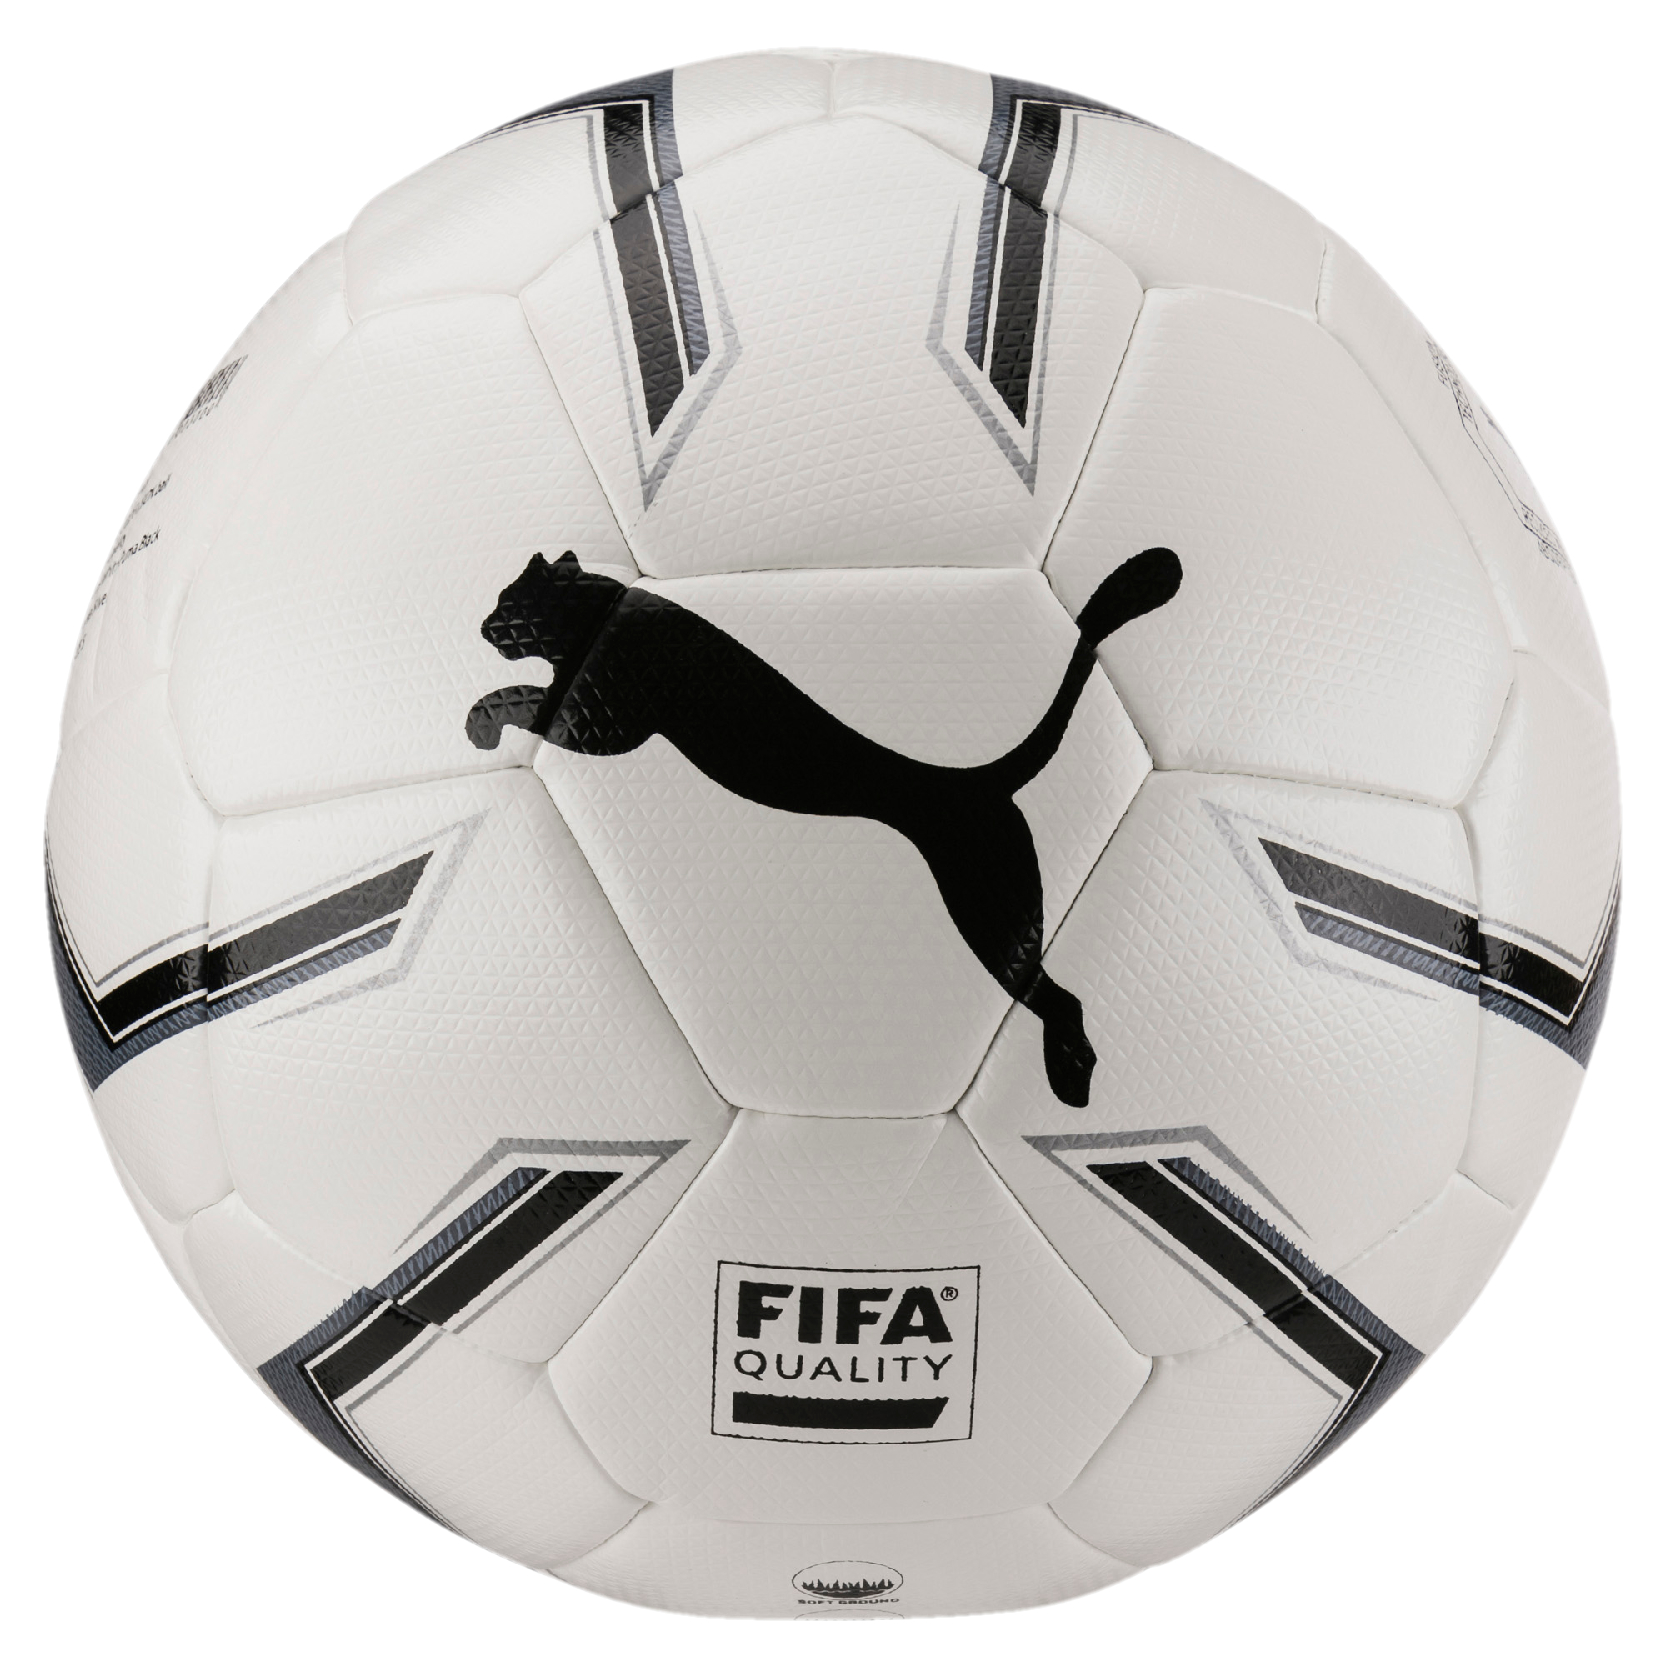 Puma ELITE 2.2 Fusion (FIFA QUALITY) Ball